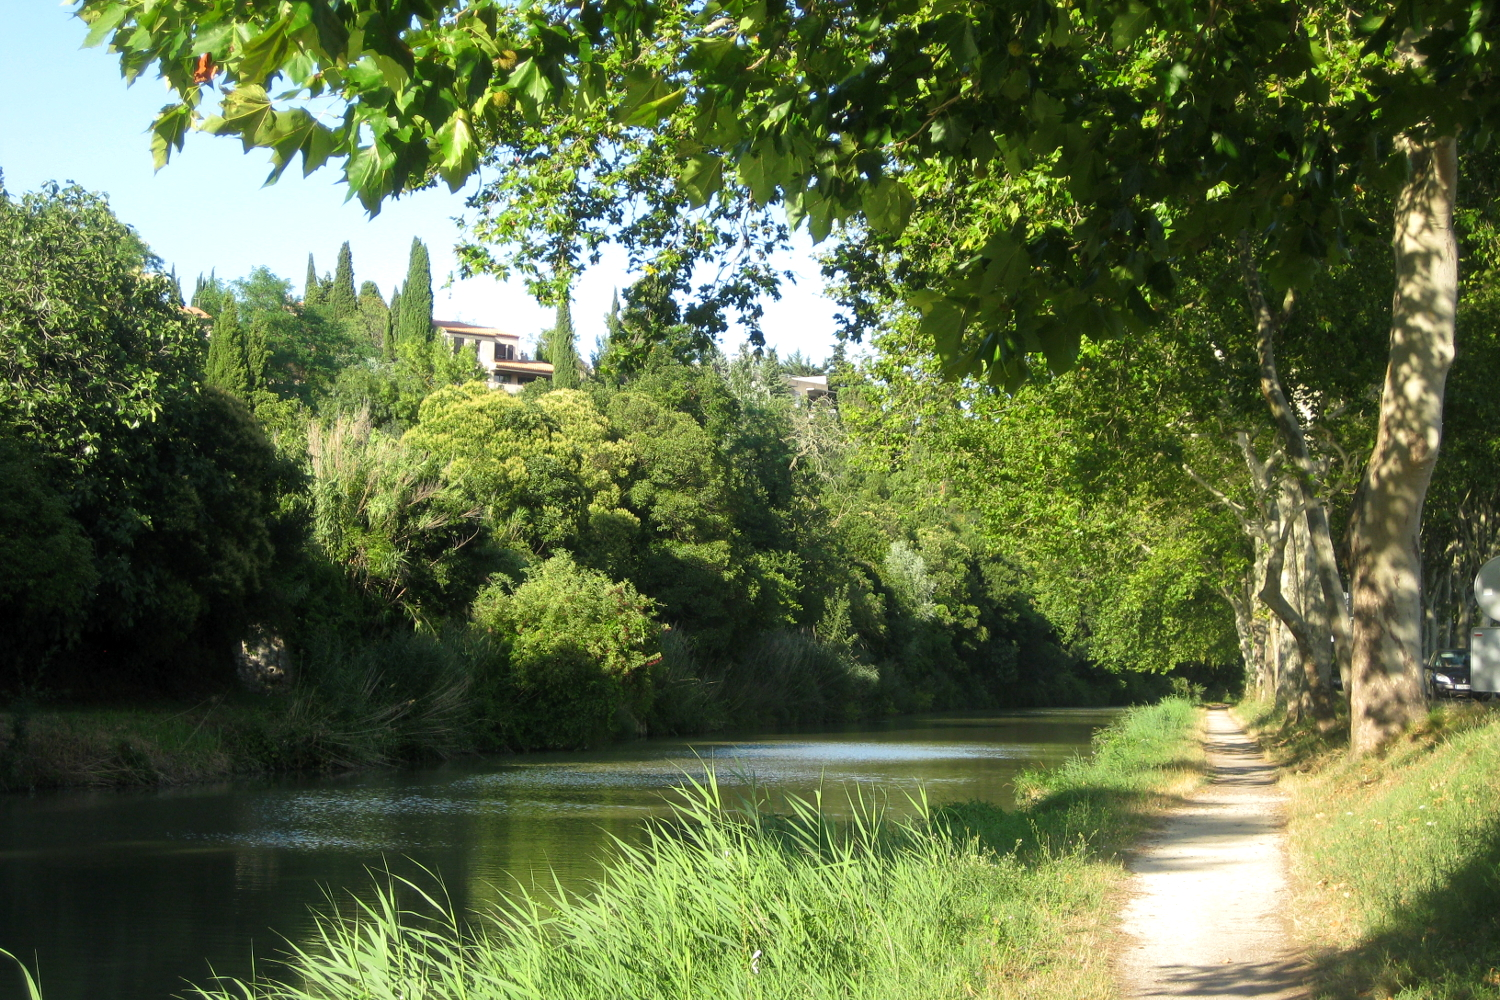 Canal du Midi in Carcassonne, France